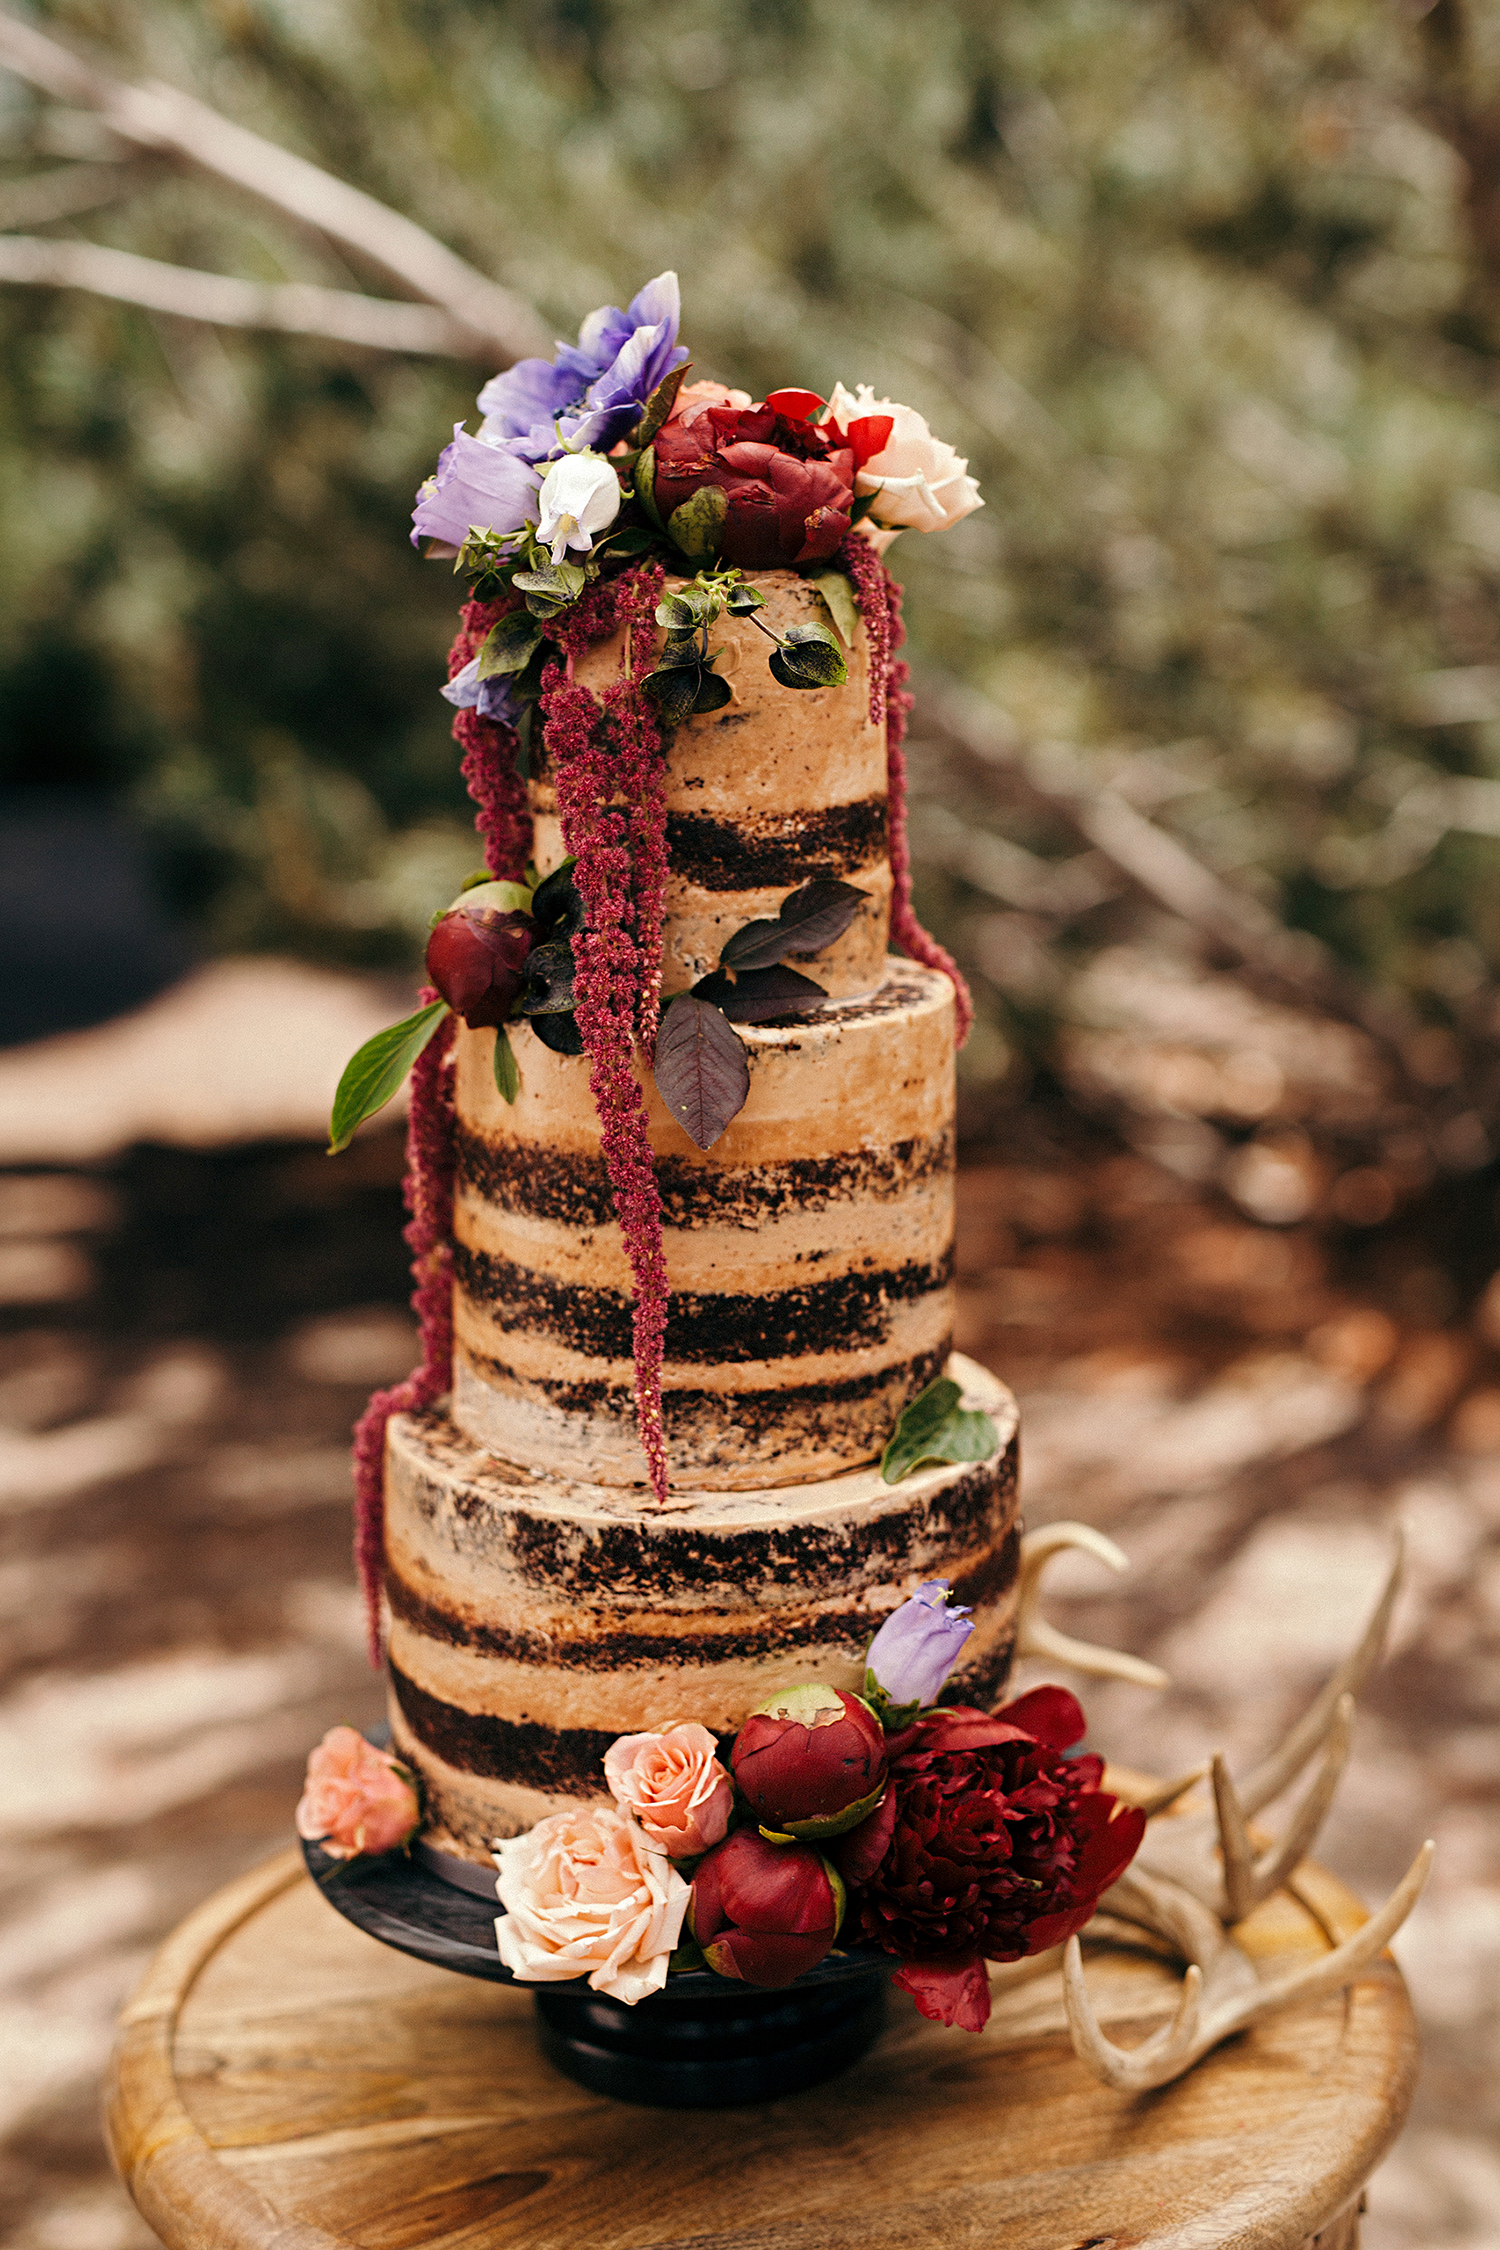 chocolate semi-naked cake with flowers